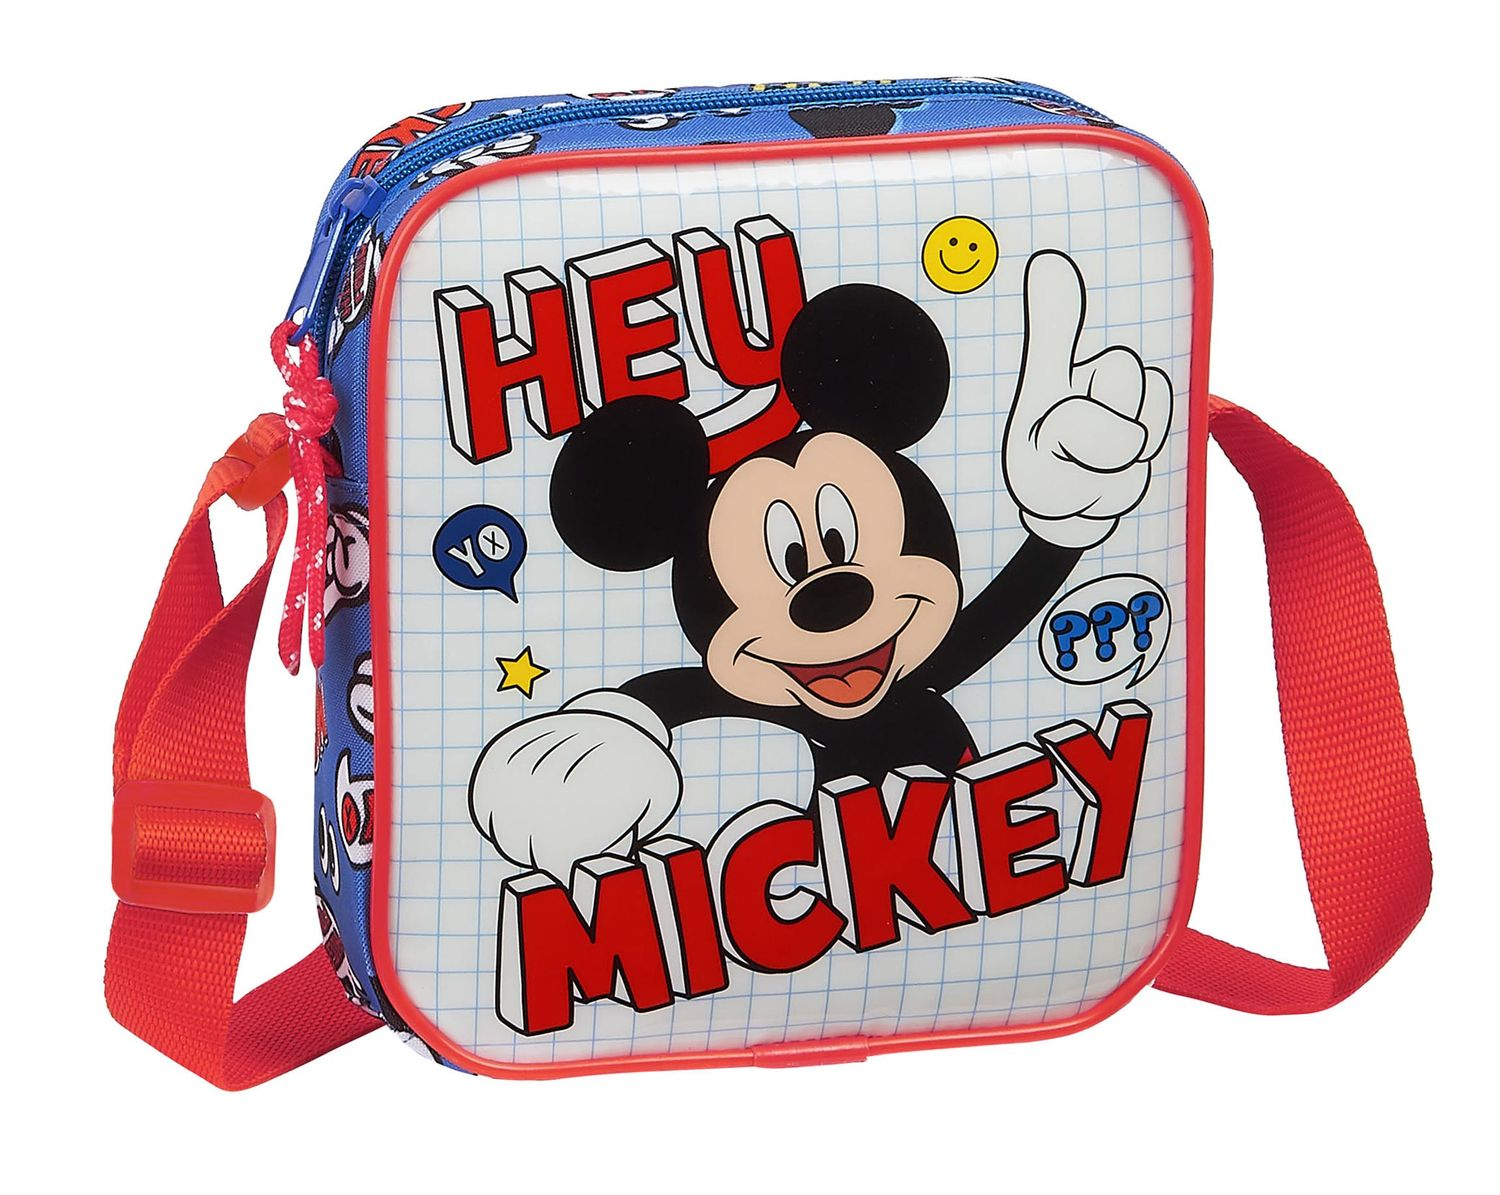 Disney MICKEY MOUSE THINGS Shoulder Bag 18cm – image 1